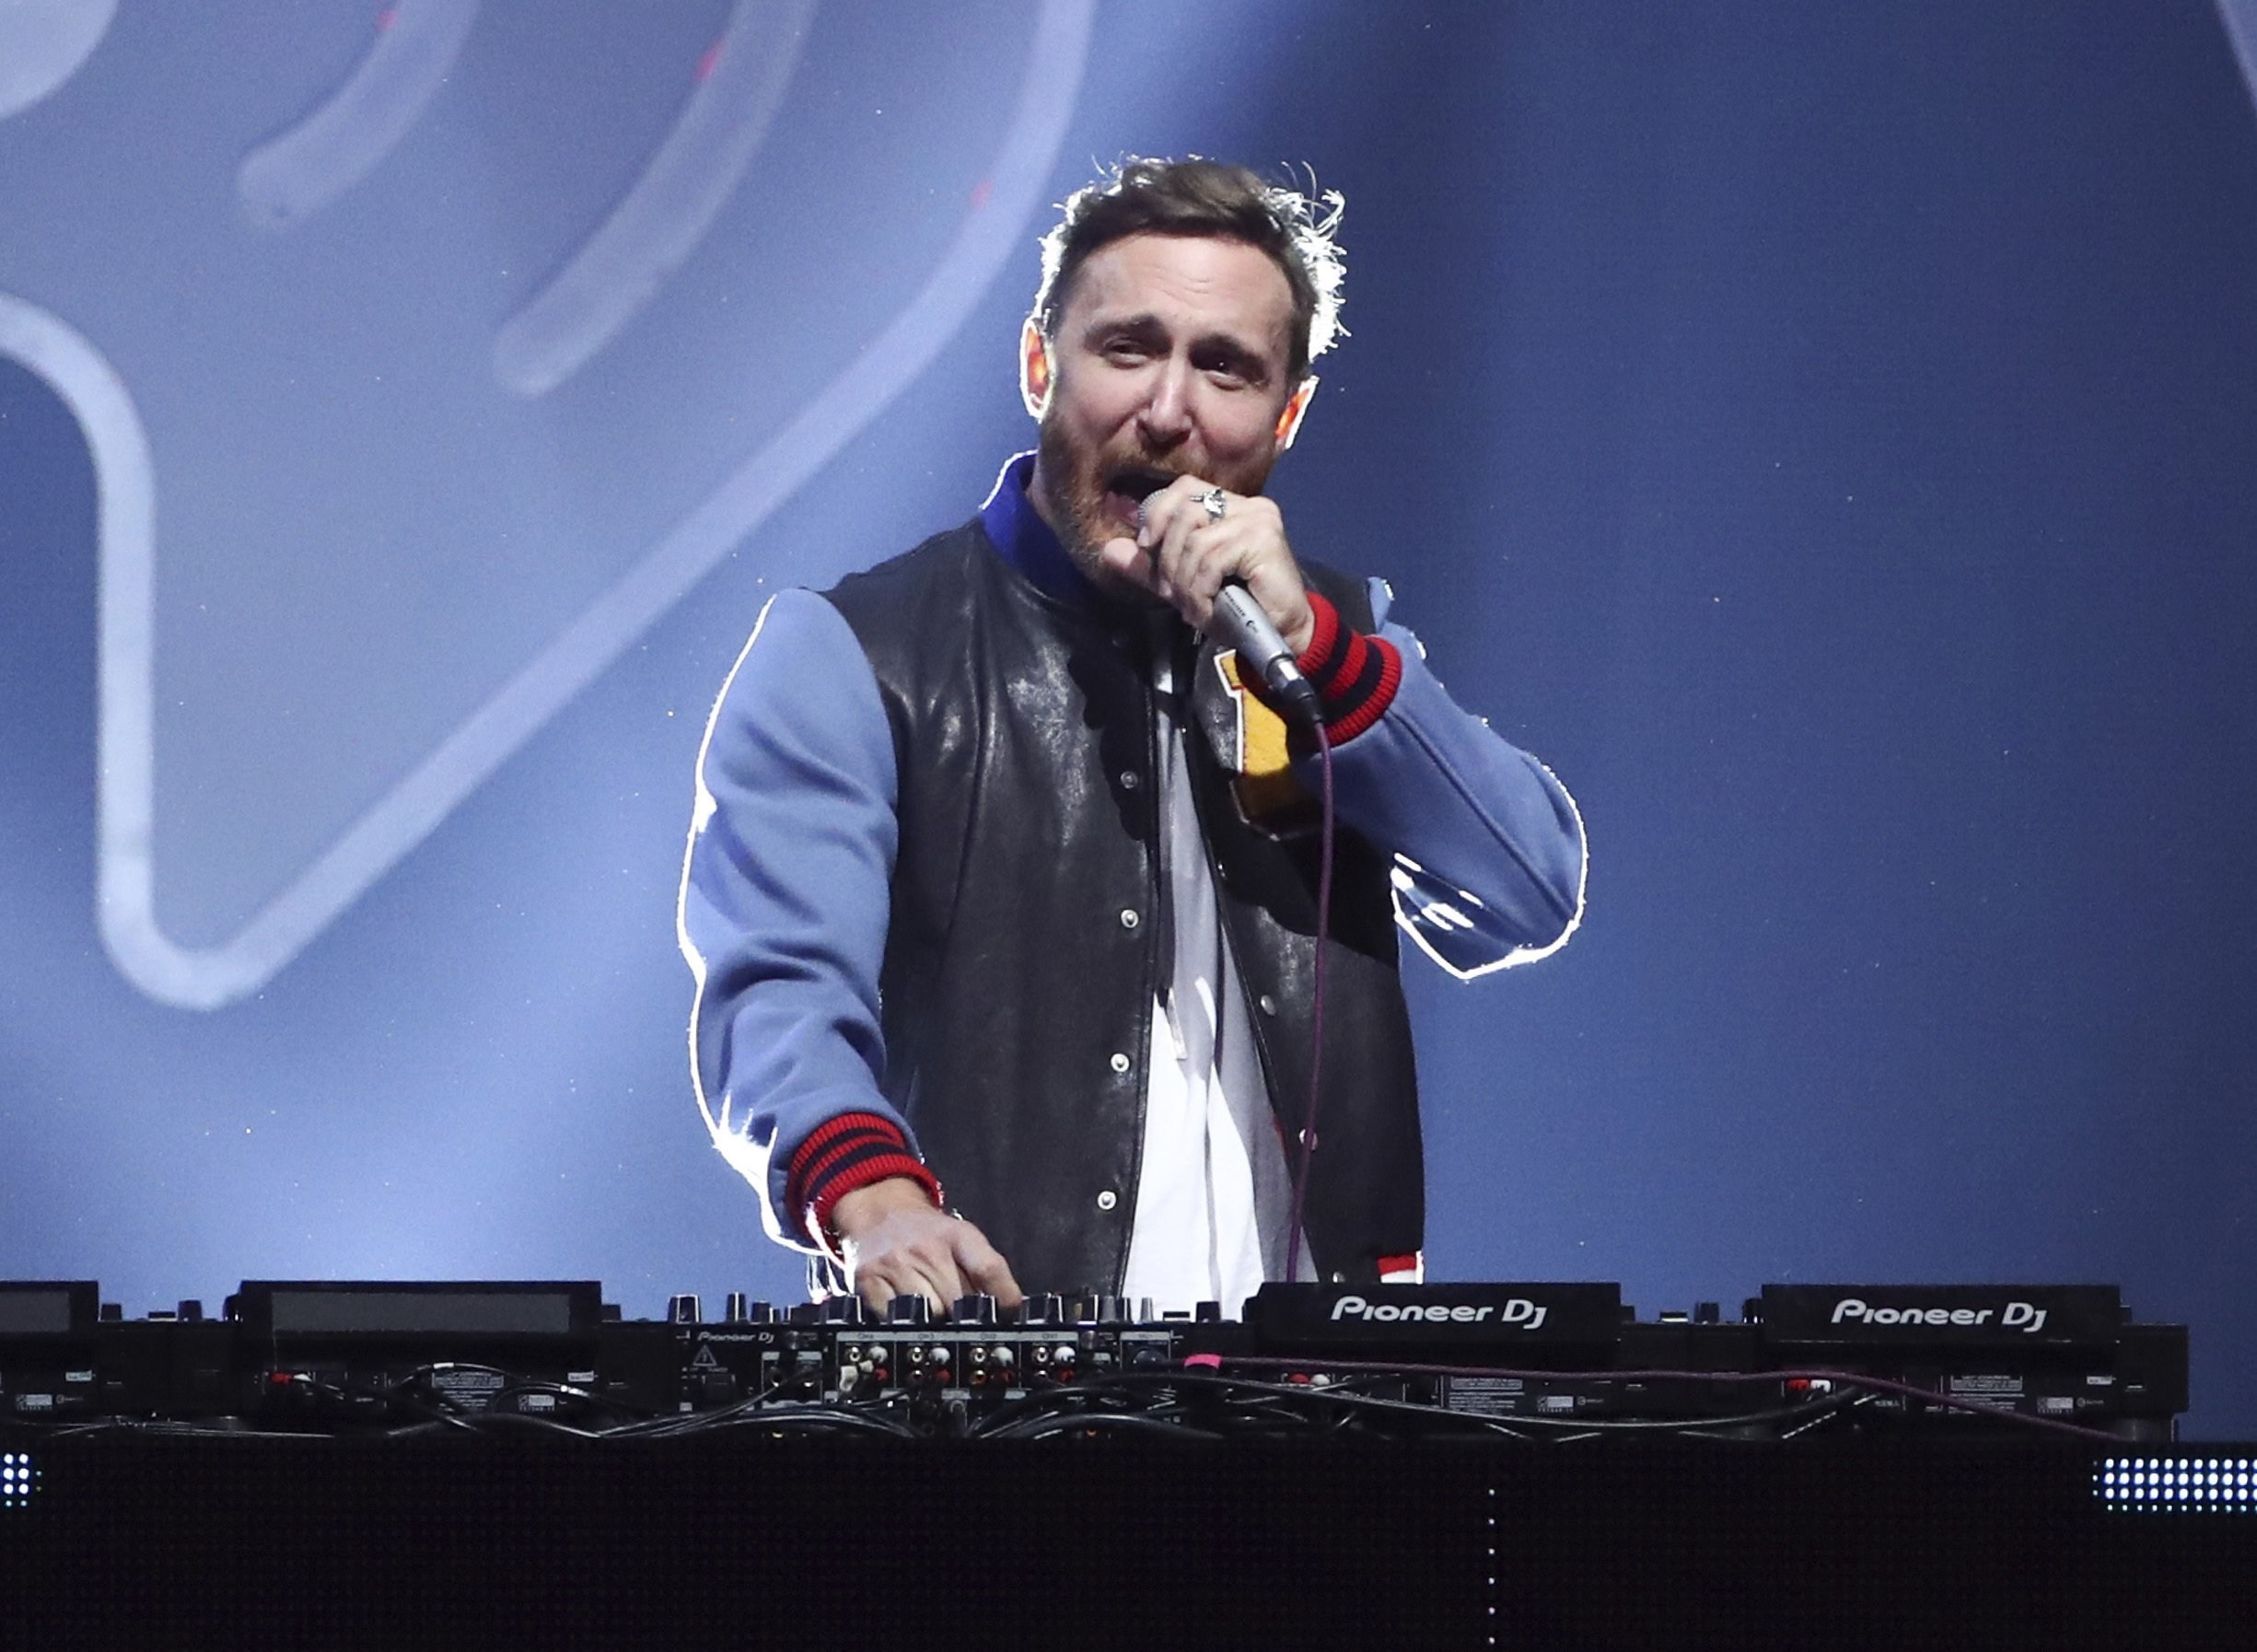 David Guetta mocked over 'tone-deaf' tribute to George Floyd as he remixes Martin Luther King speech